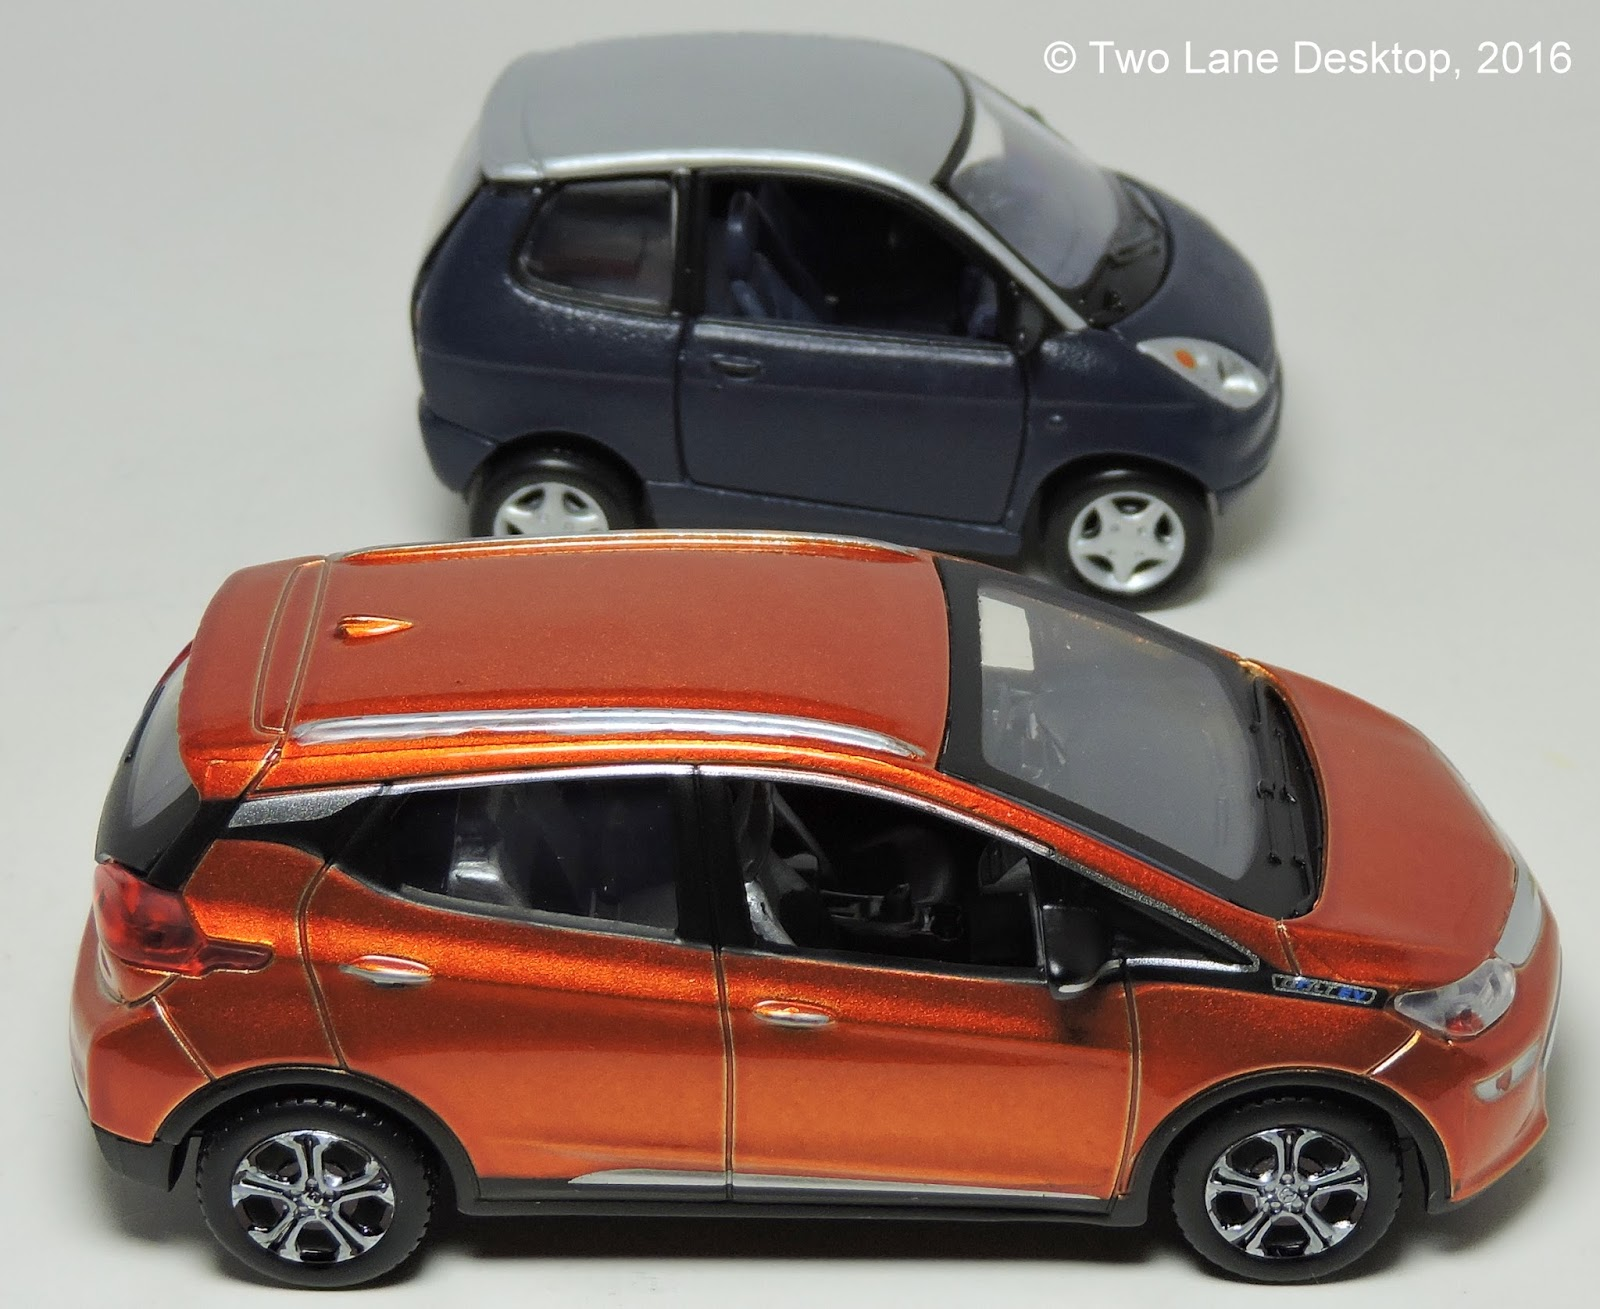 ... this is not the first time Maisto has done an electric vehicle in the 143 Power Racer line. The first one would be called the Ford Think (or Th!nk). & Two Lane Desktop: Its Electric! Maisto 1:43 Chevy Bolt and Ford Th!nk